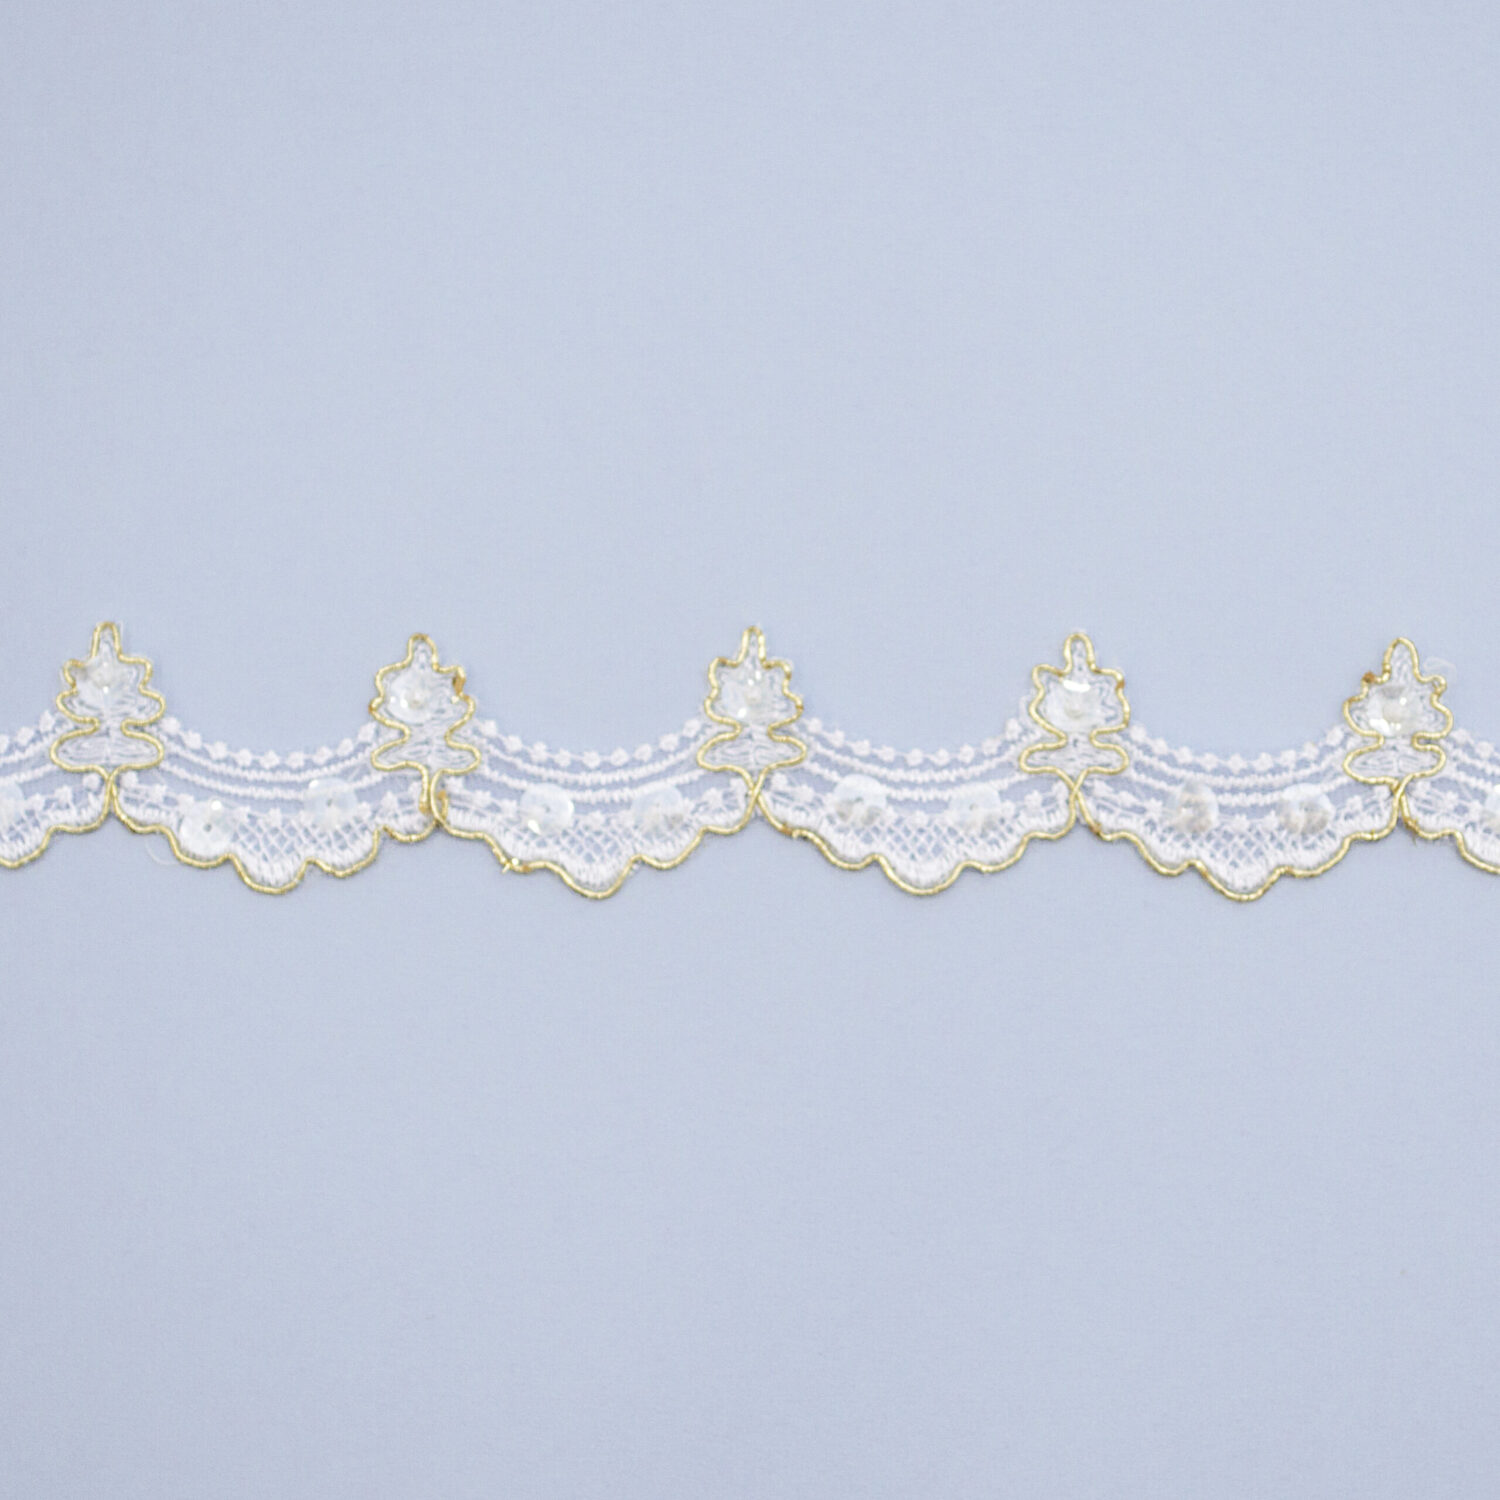 Embroidered lace trim TF-5002B-A